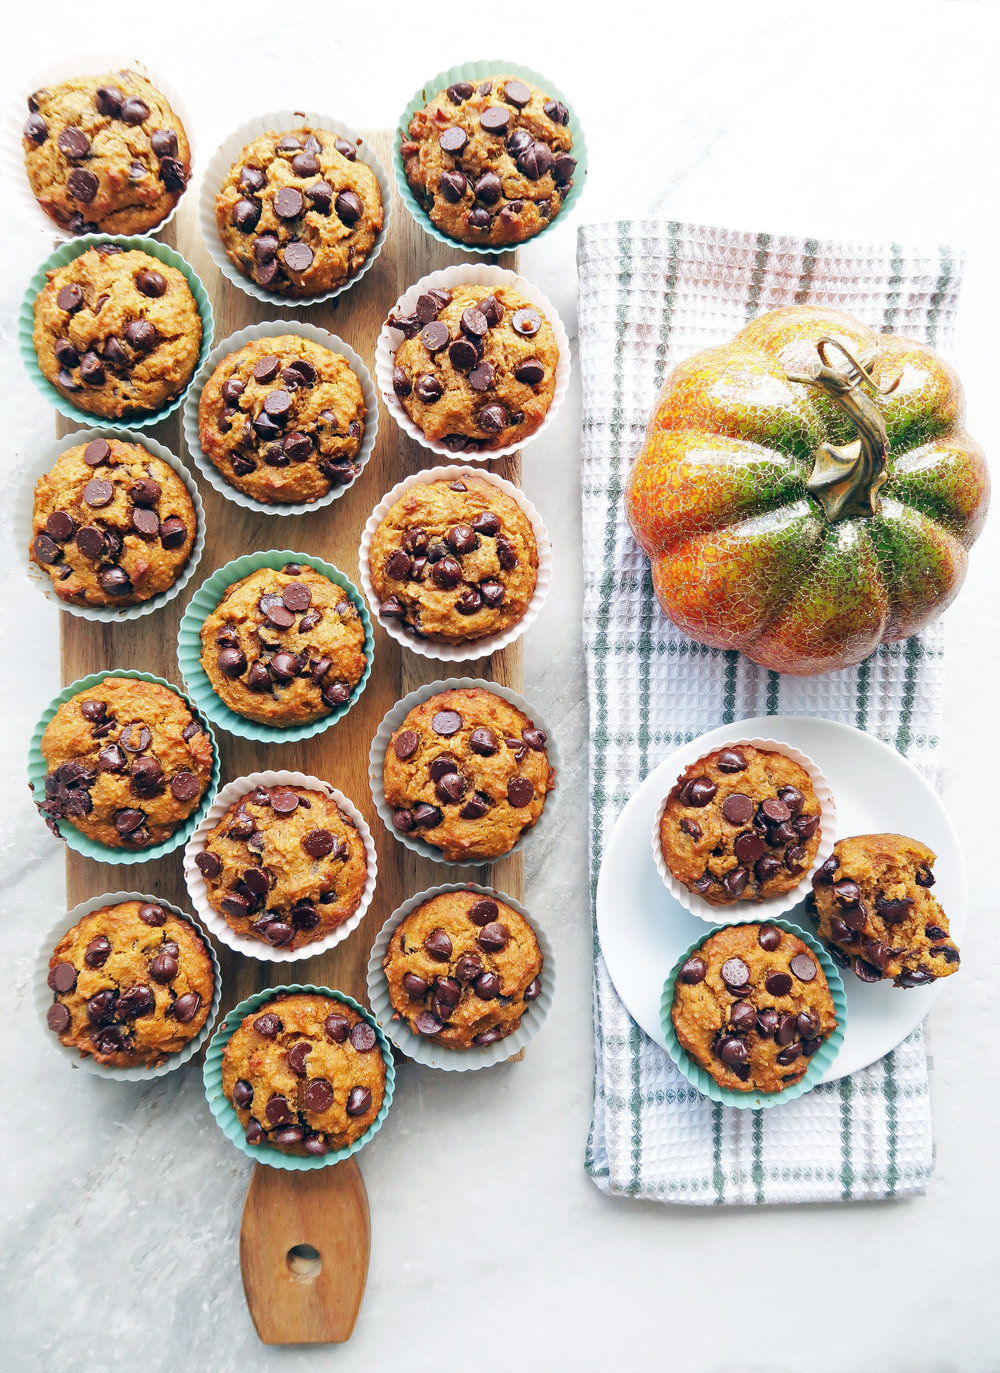 Pumpkin chocolate chip whole wheat muffins placed on a rectangular wooden board and on a white plate.